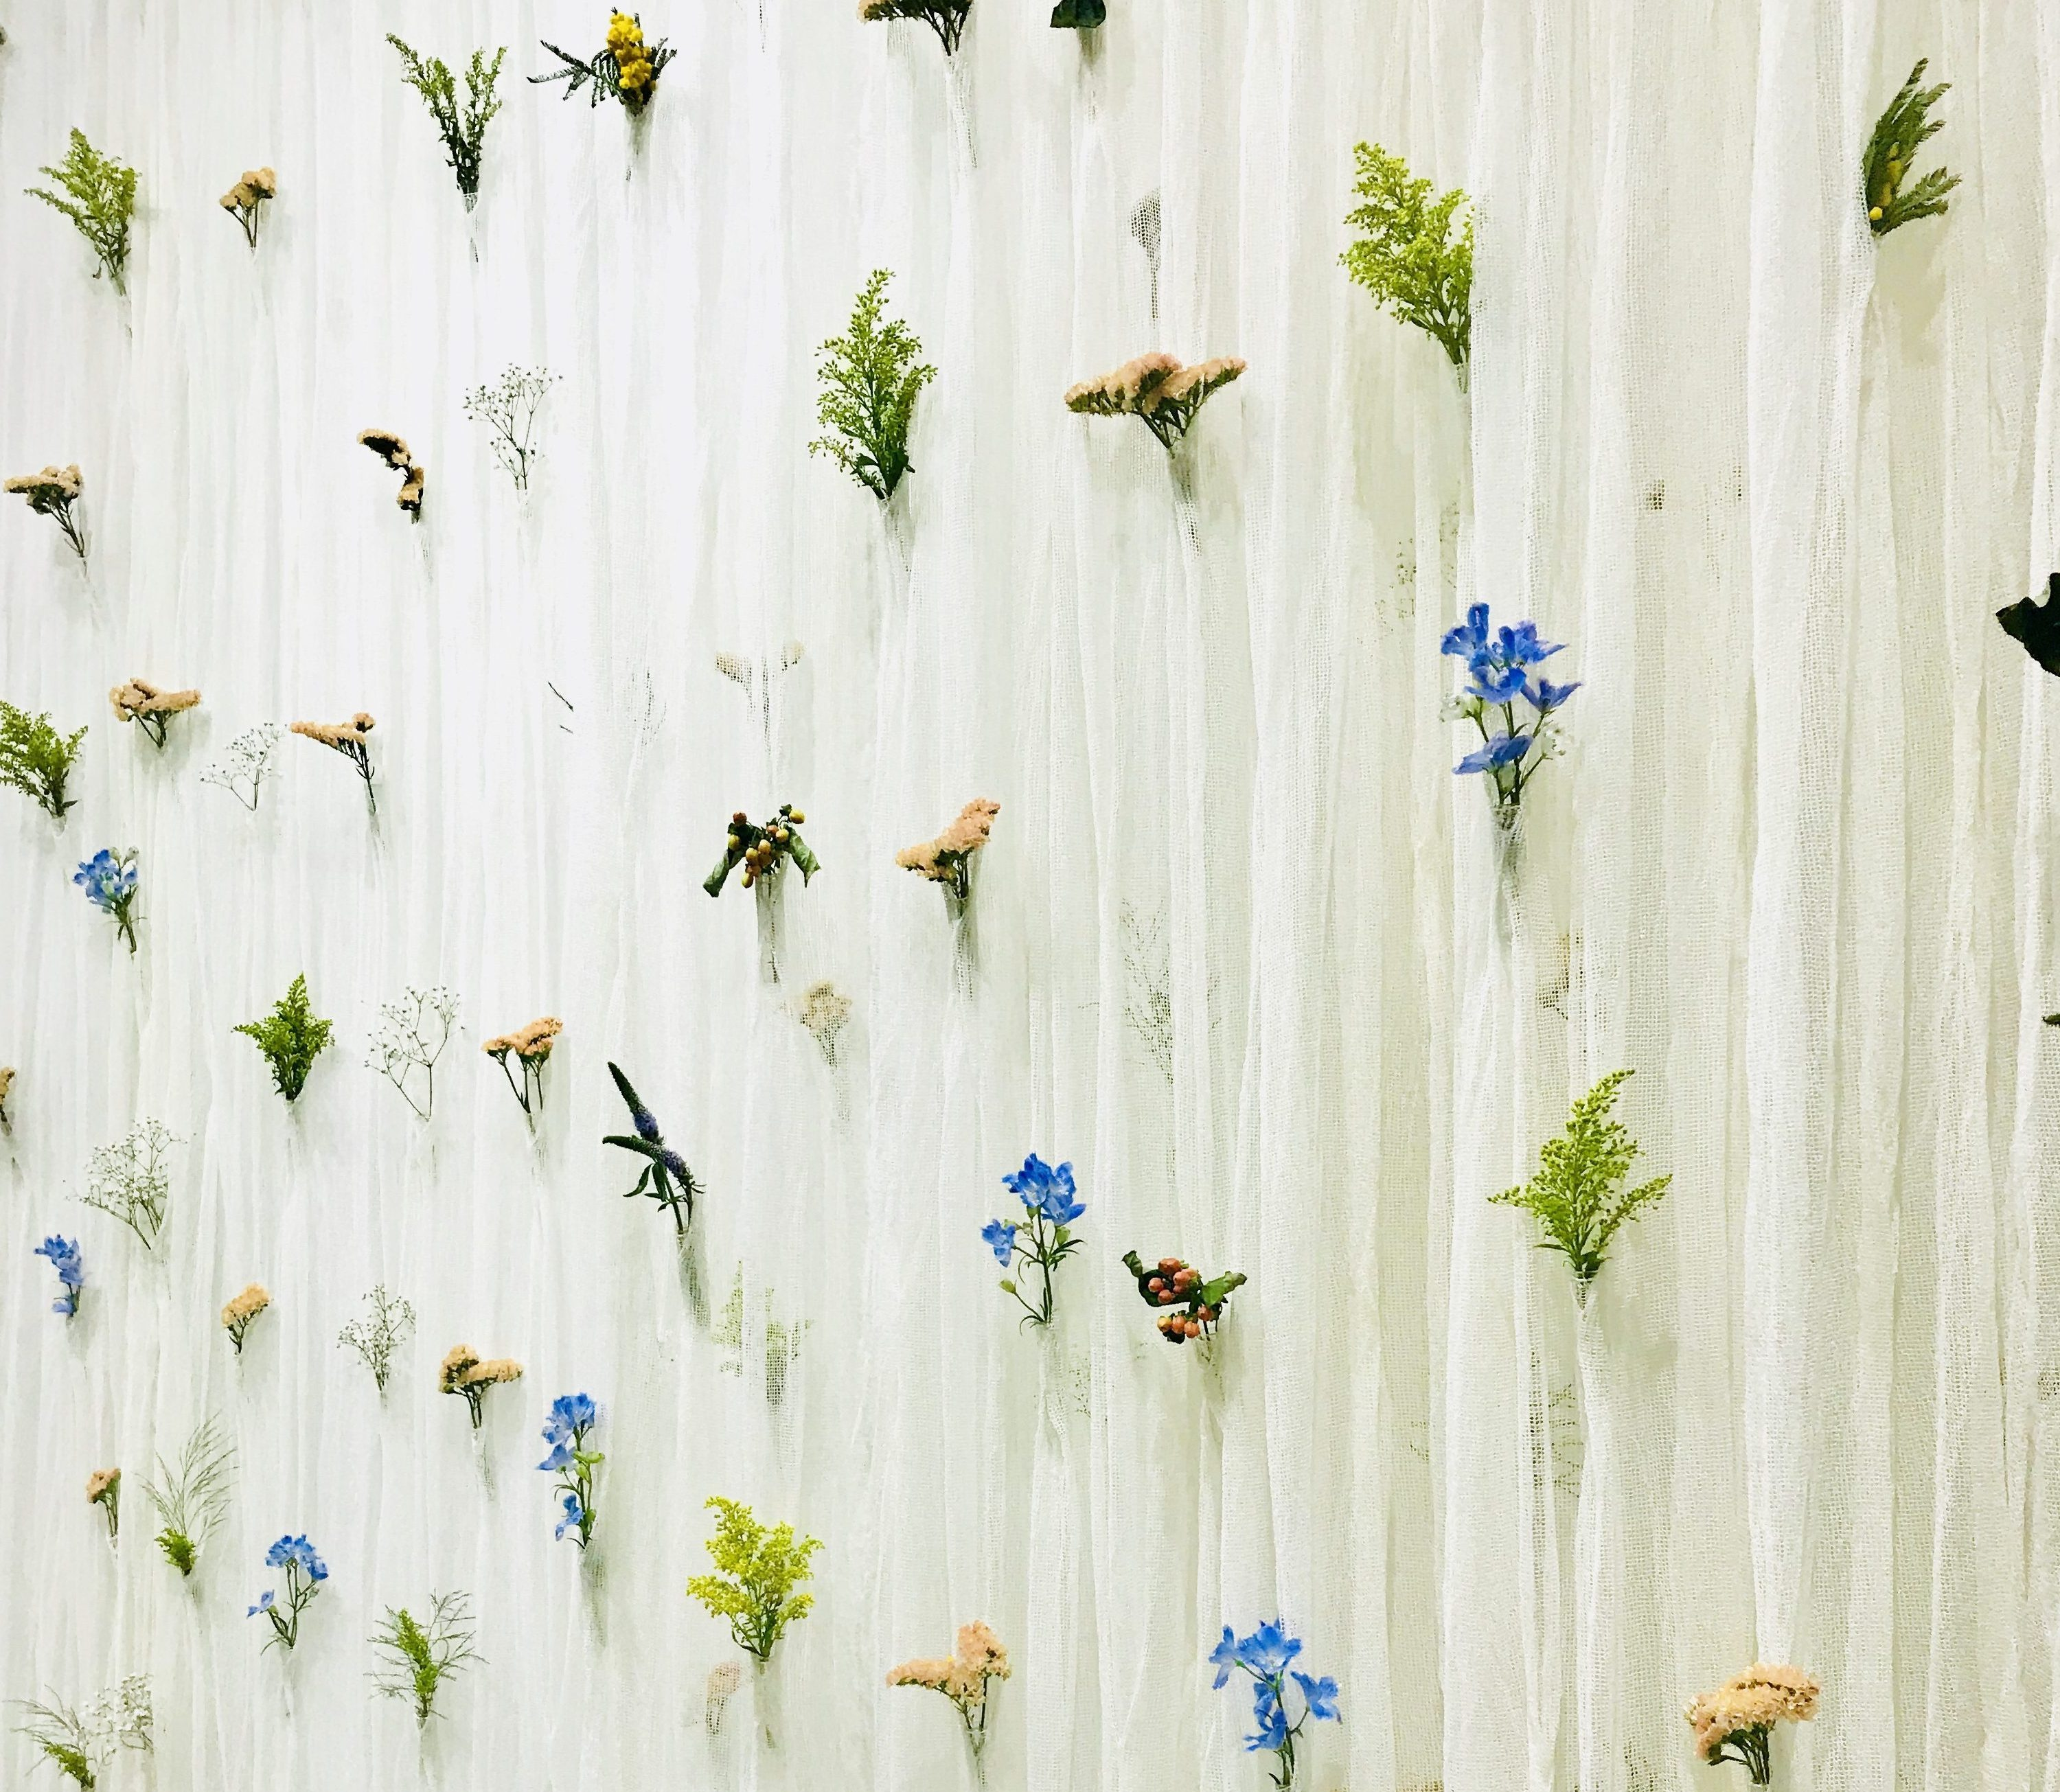 A closer look at the details of Umé Studio's curtains reveals a soft, organic and artful approach applied to a common household item.